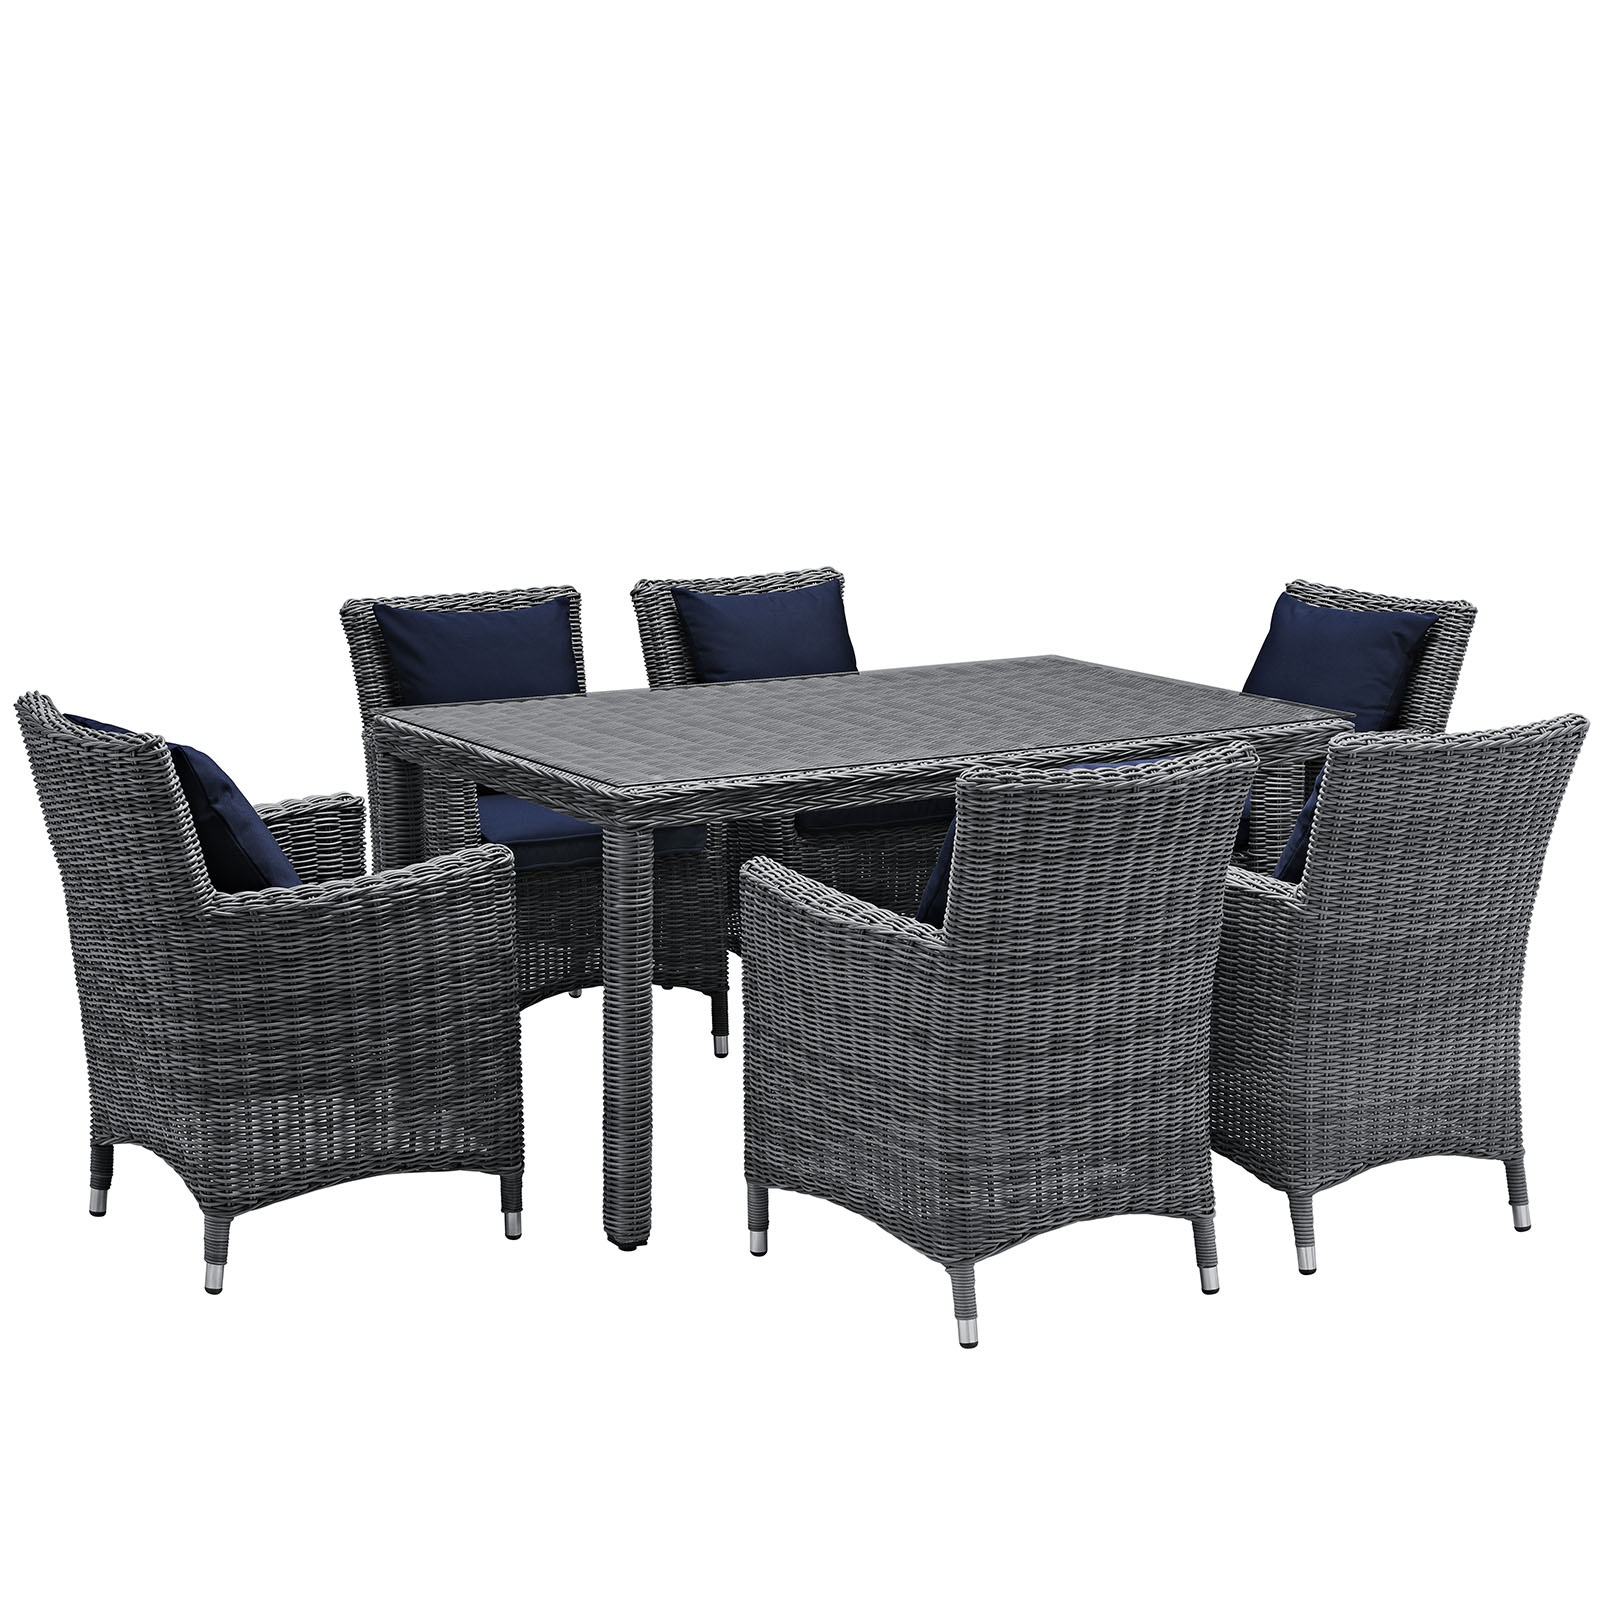 Modern Contemporary Urban Design Outdoor Patio Balcony Seven PCS Dining Chairs and Table Set, Navy Blue, Rattan